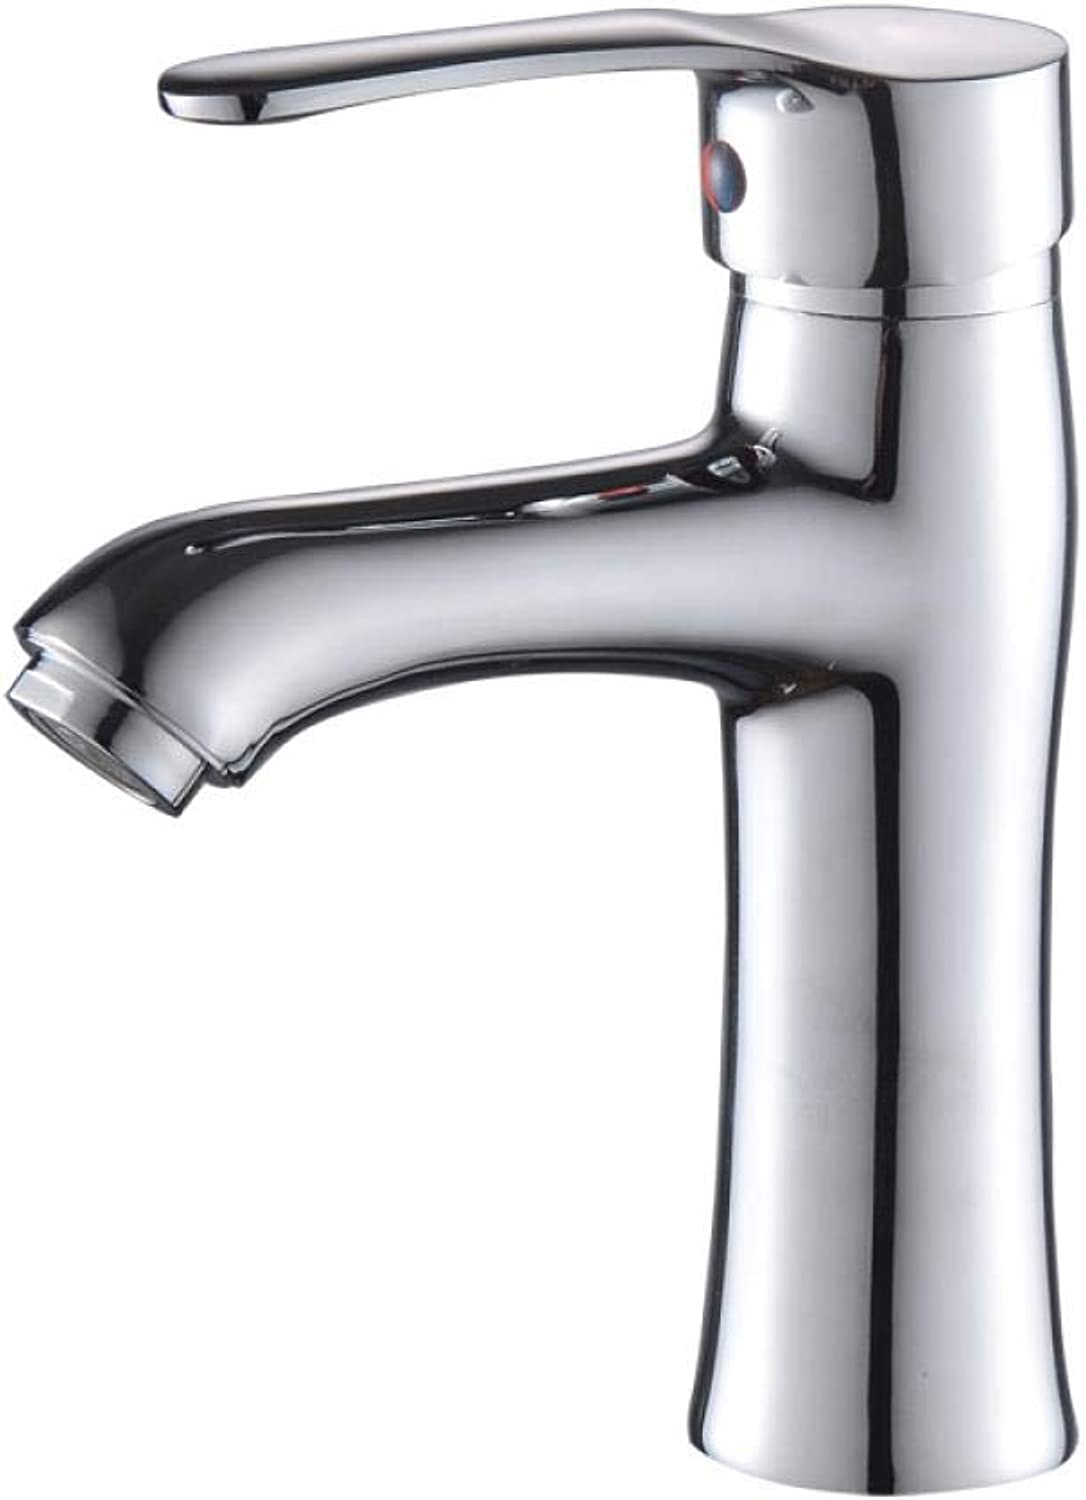 Stainless Steel Hot and Cold Washbasin Heightening Single Hole Straight Mouth Tap C7659